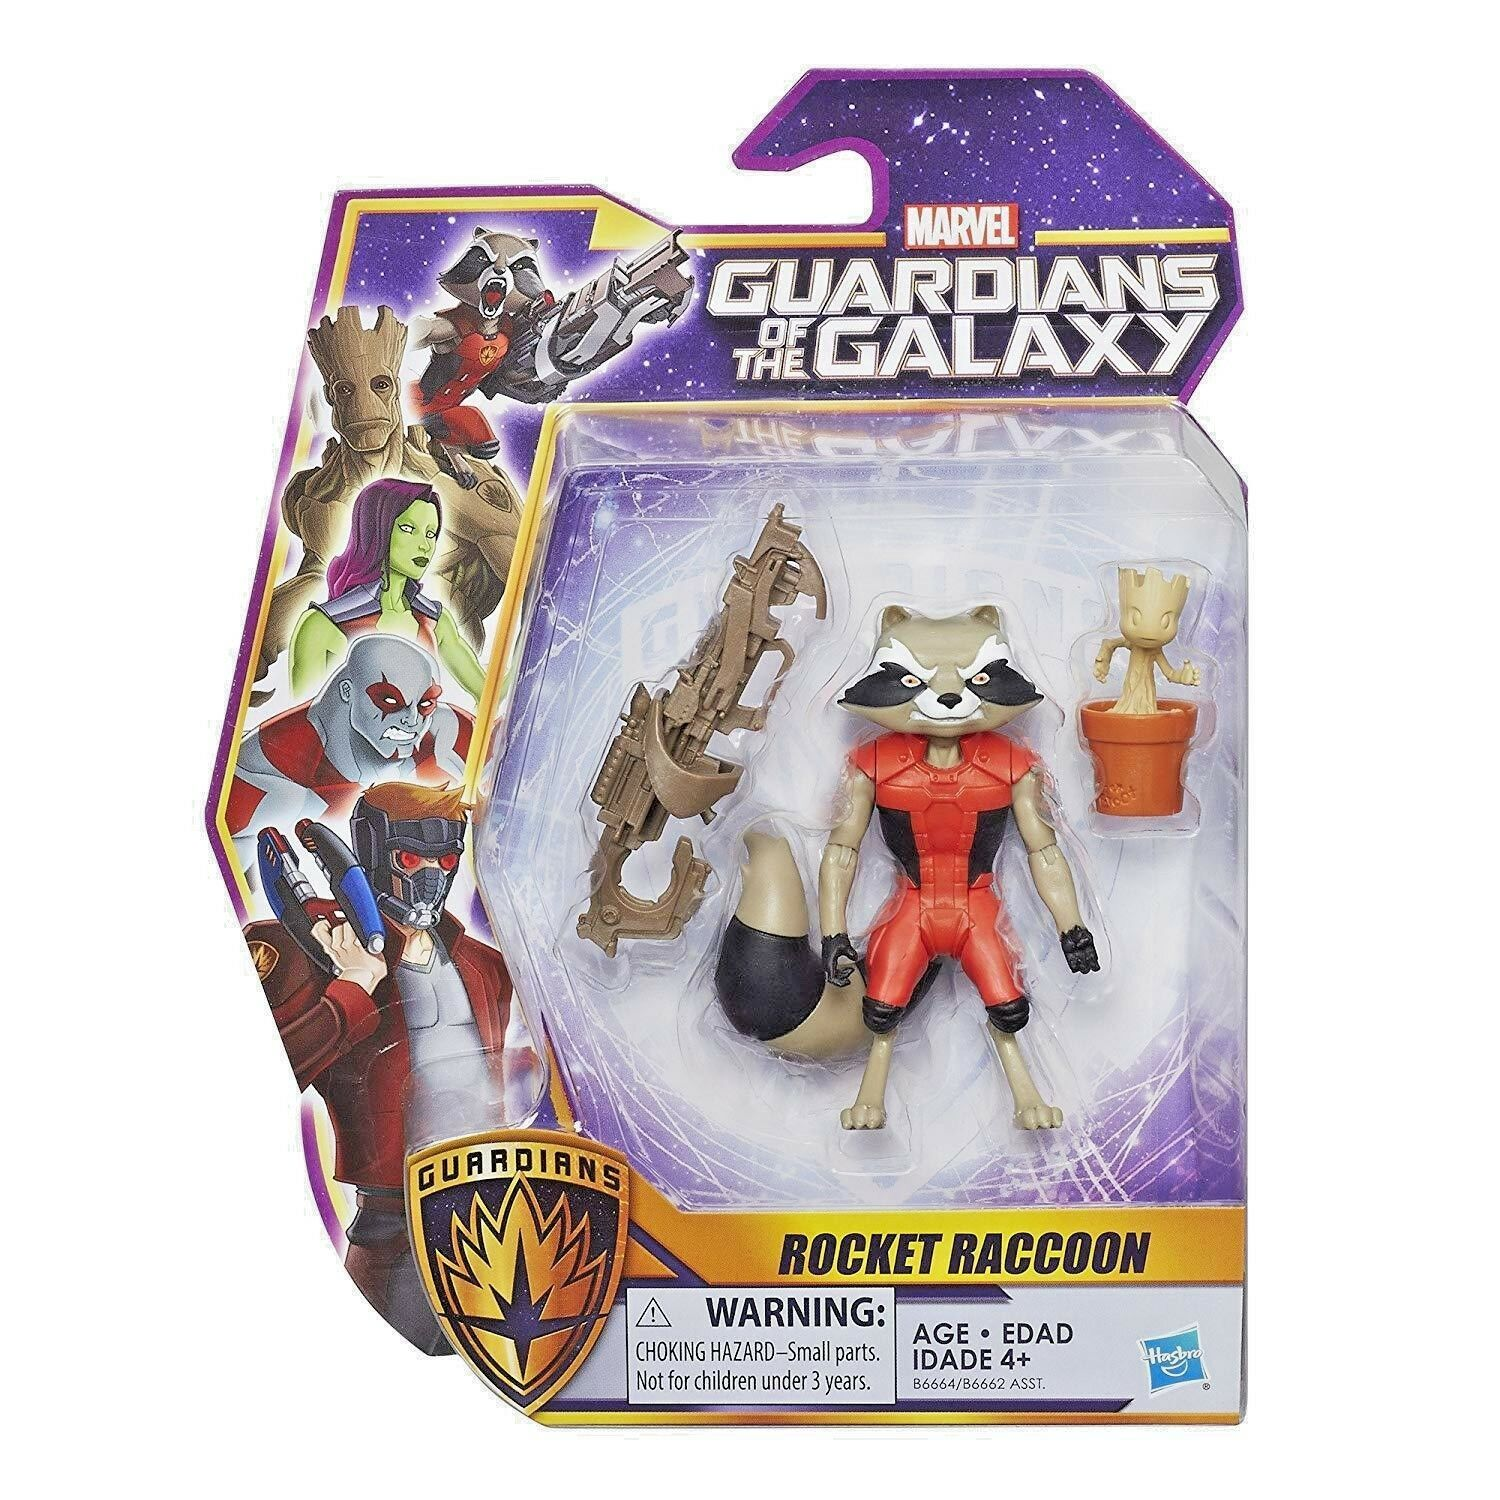 Marvel Guardians of the Galaxy Legends Series Rocket Raccoon 6-inch